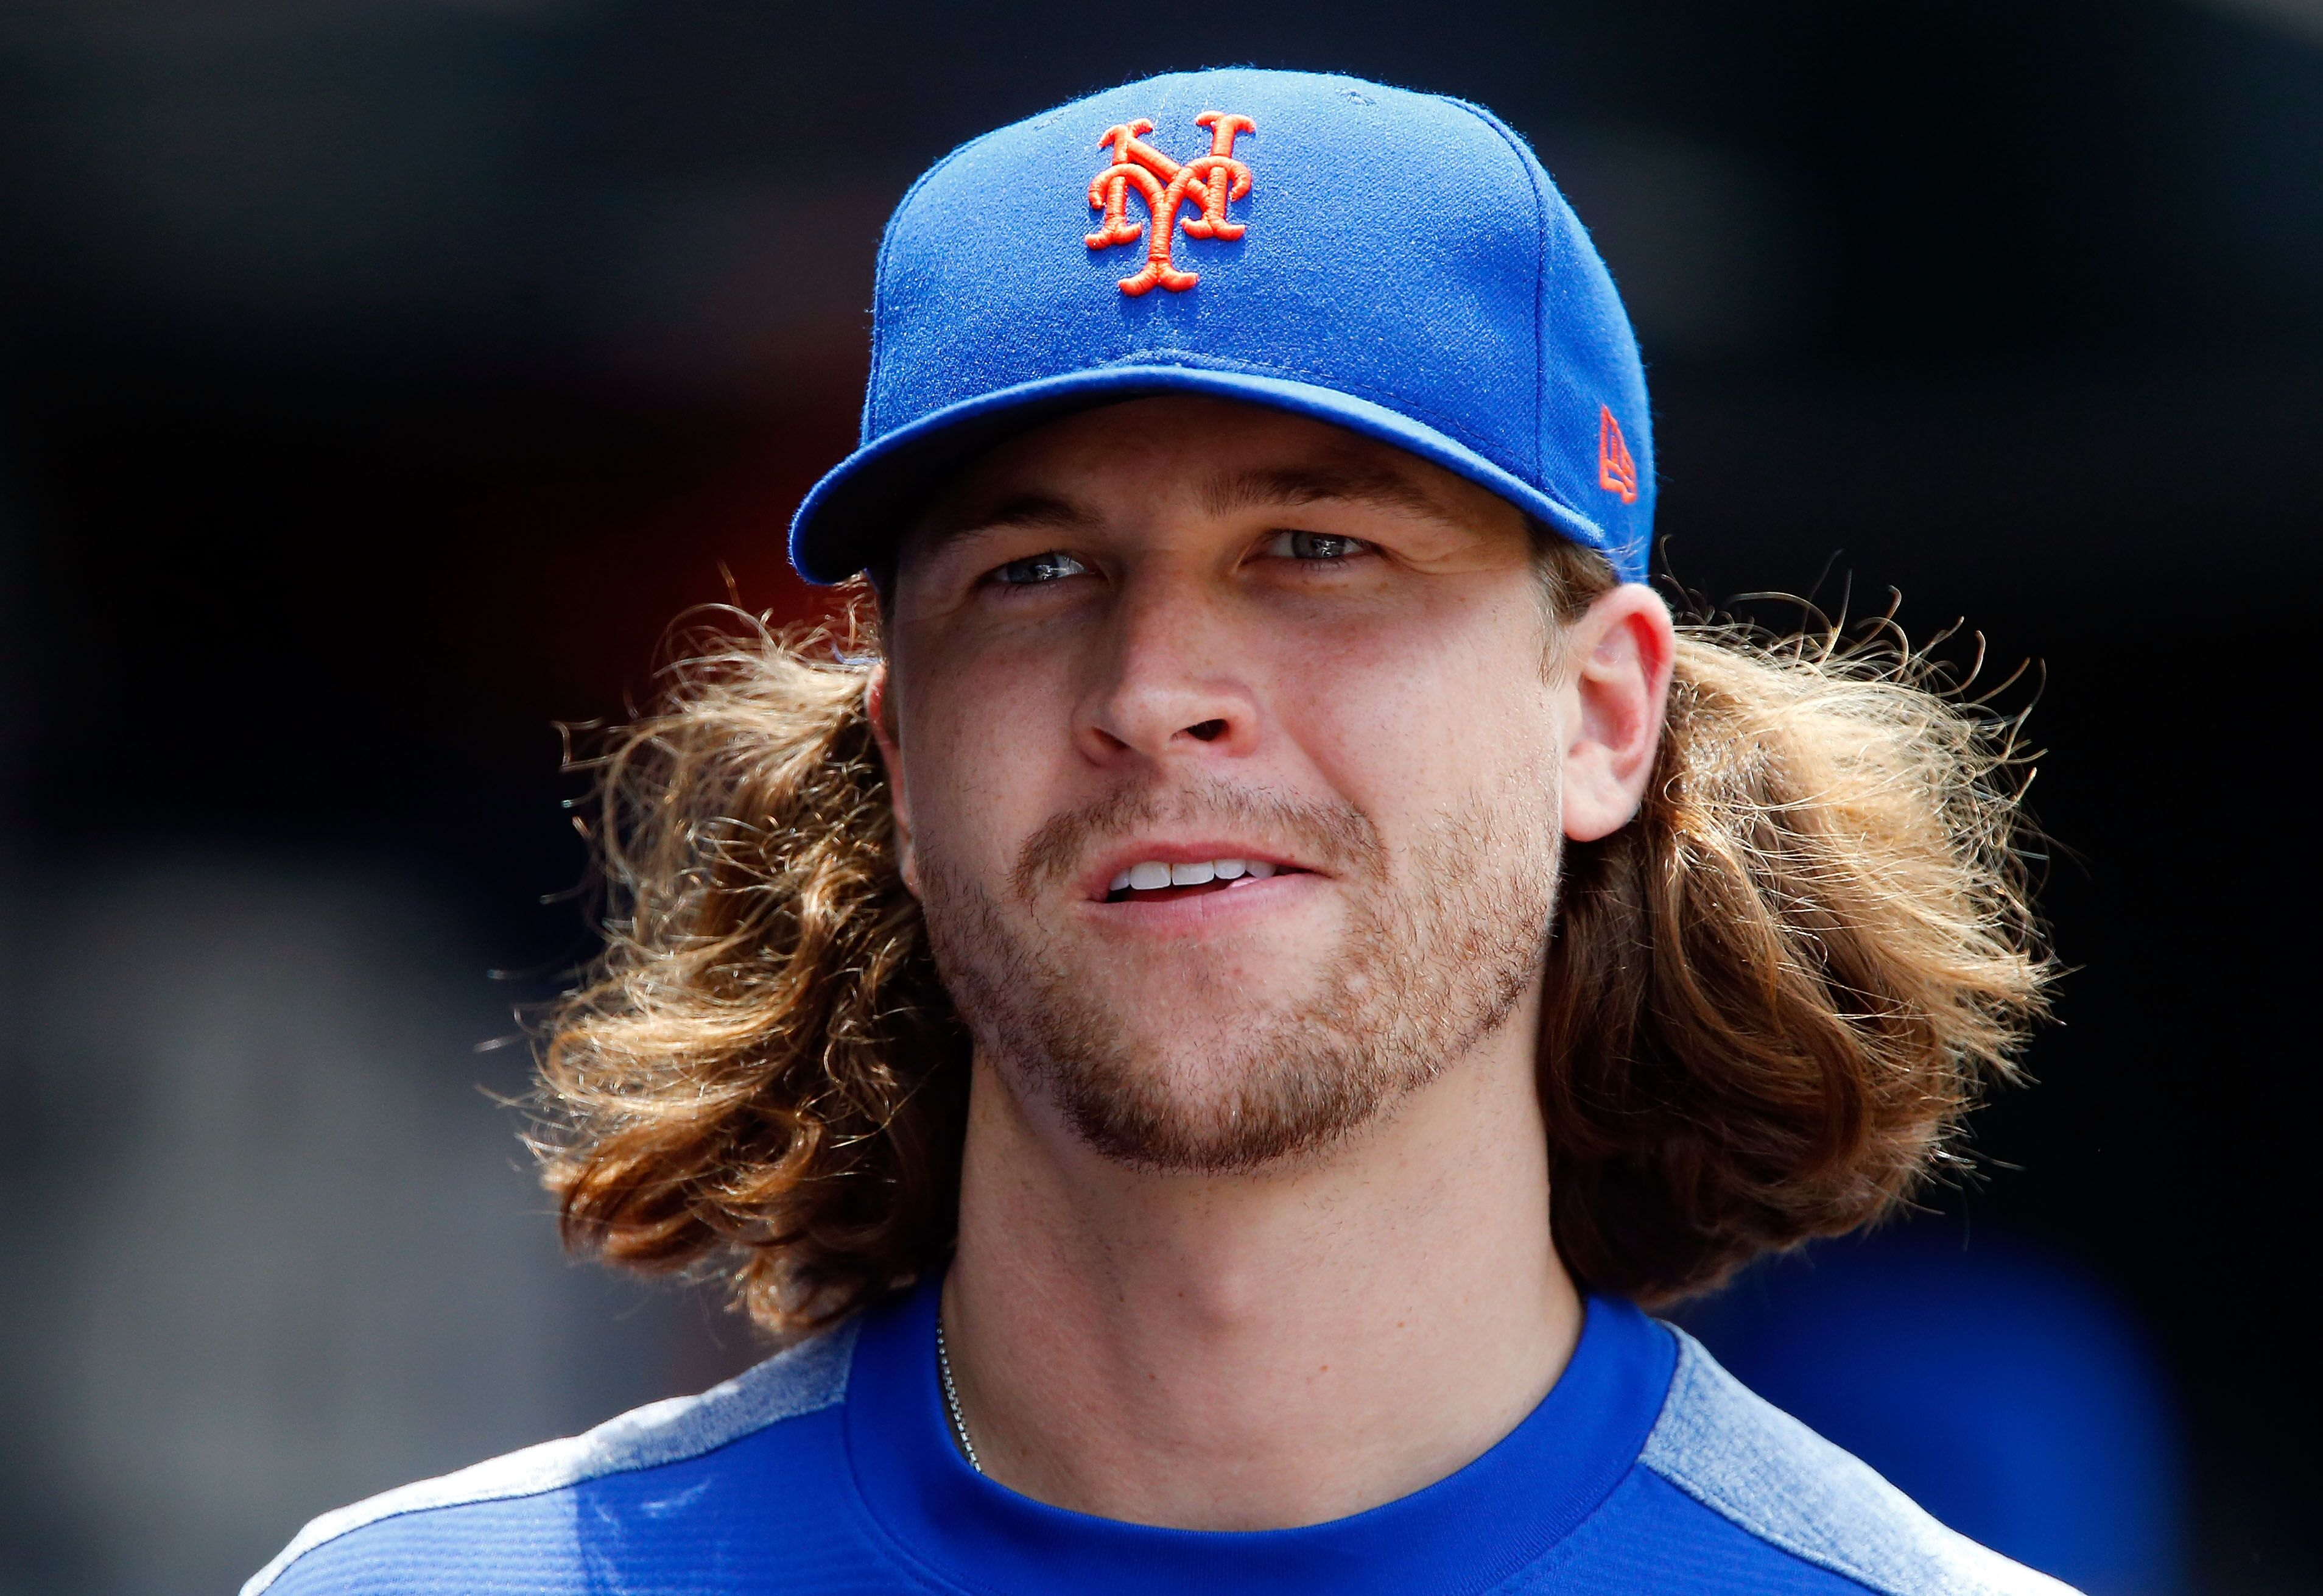 The one consistently positive aspect of the Mets season thus far has been a guarantee once every turn through the rotation that Jacob deGrom gives them